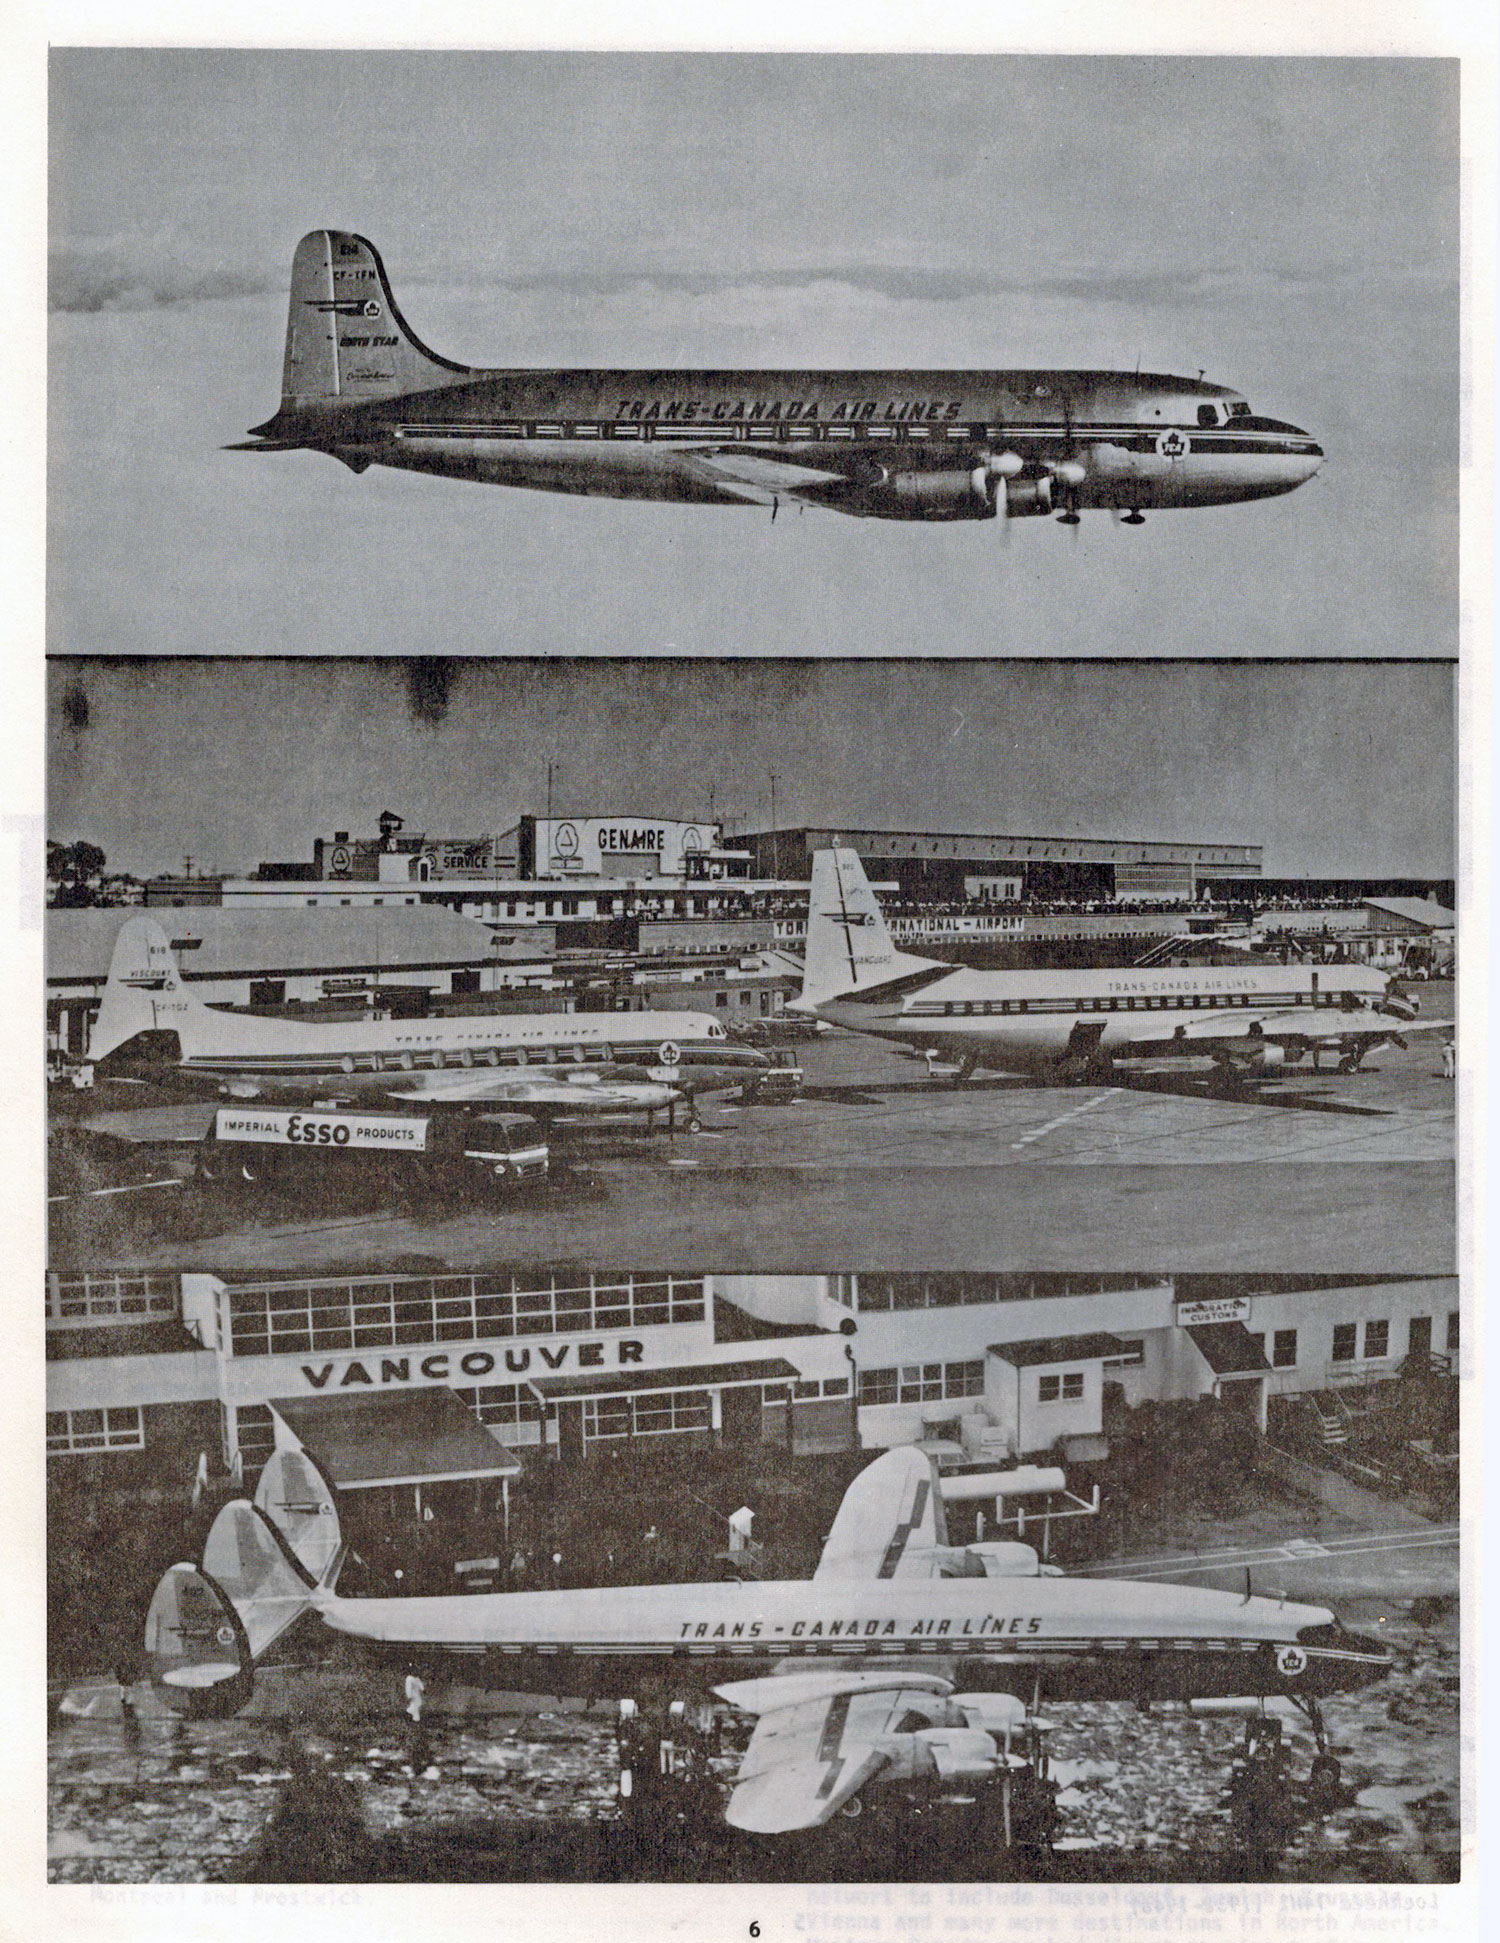 Trans Canada Air Lines history to 1984